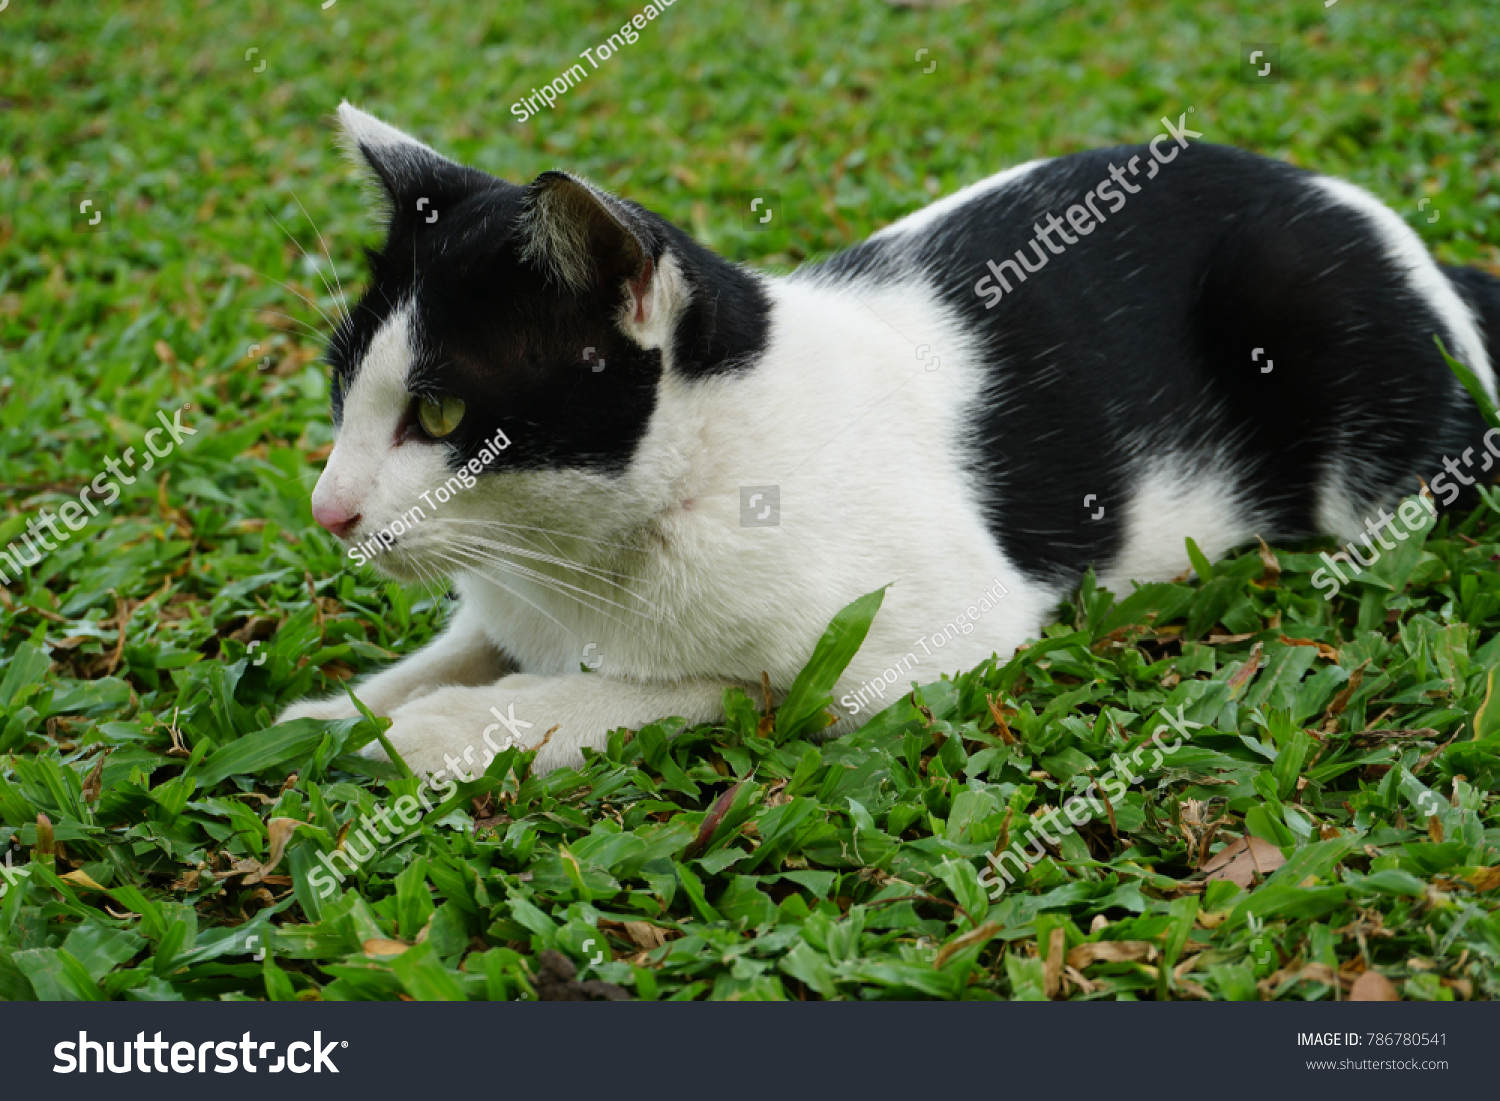 Cats Similar Anatomy Other Felids Strong Stock Photo (Edit Now ...